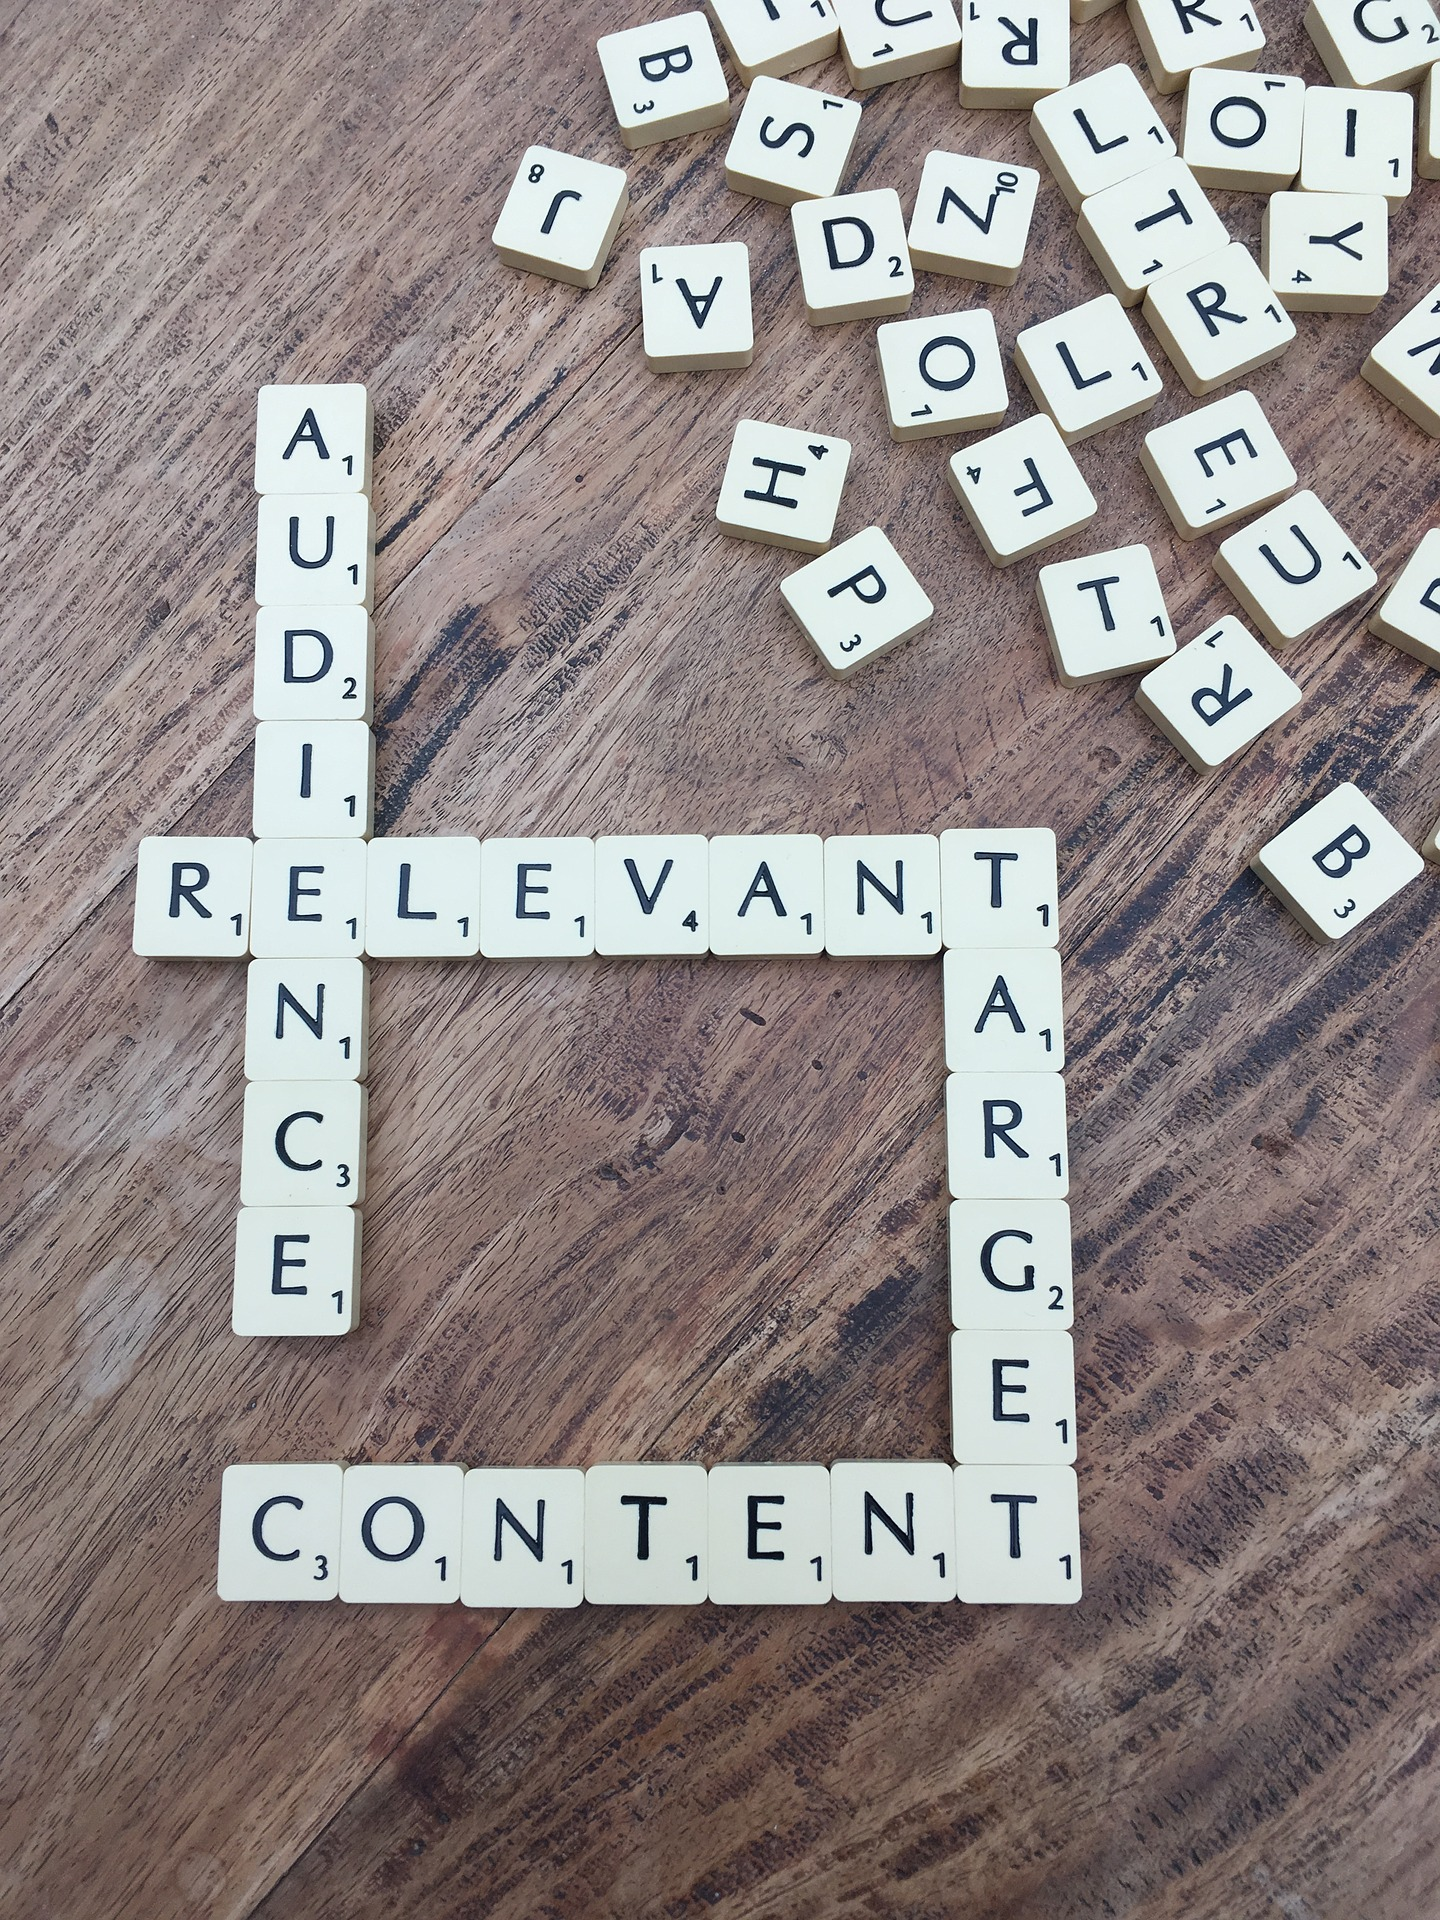 Native Advertising - audience, relevant, target, content